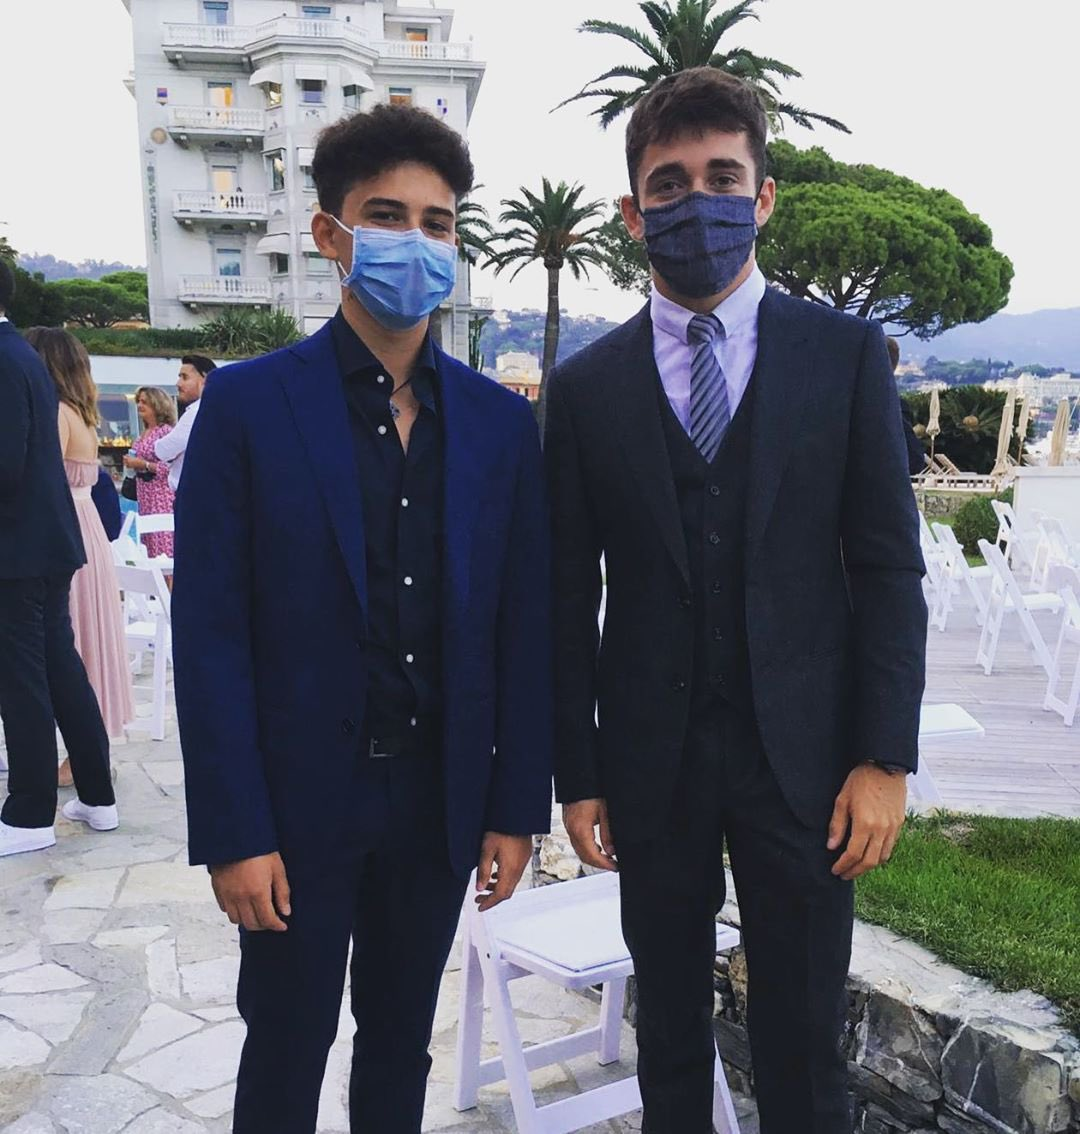 NEW || @Charles_Leclerc at Grand Hotel Miramare 🇮🇹 yesterday!  📸 : alessandroamico_  #F1 #Charles16 https://t.co/RXgMrID8cM